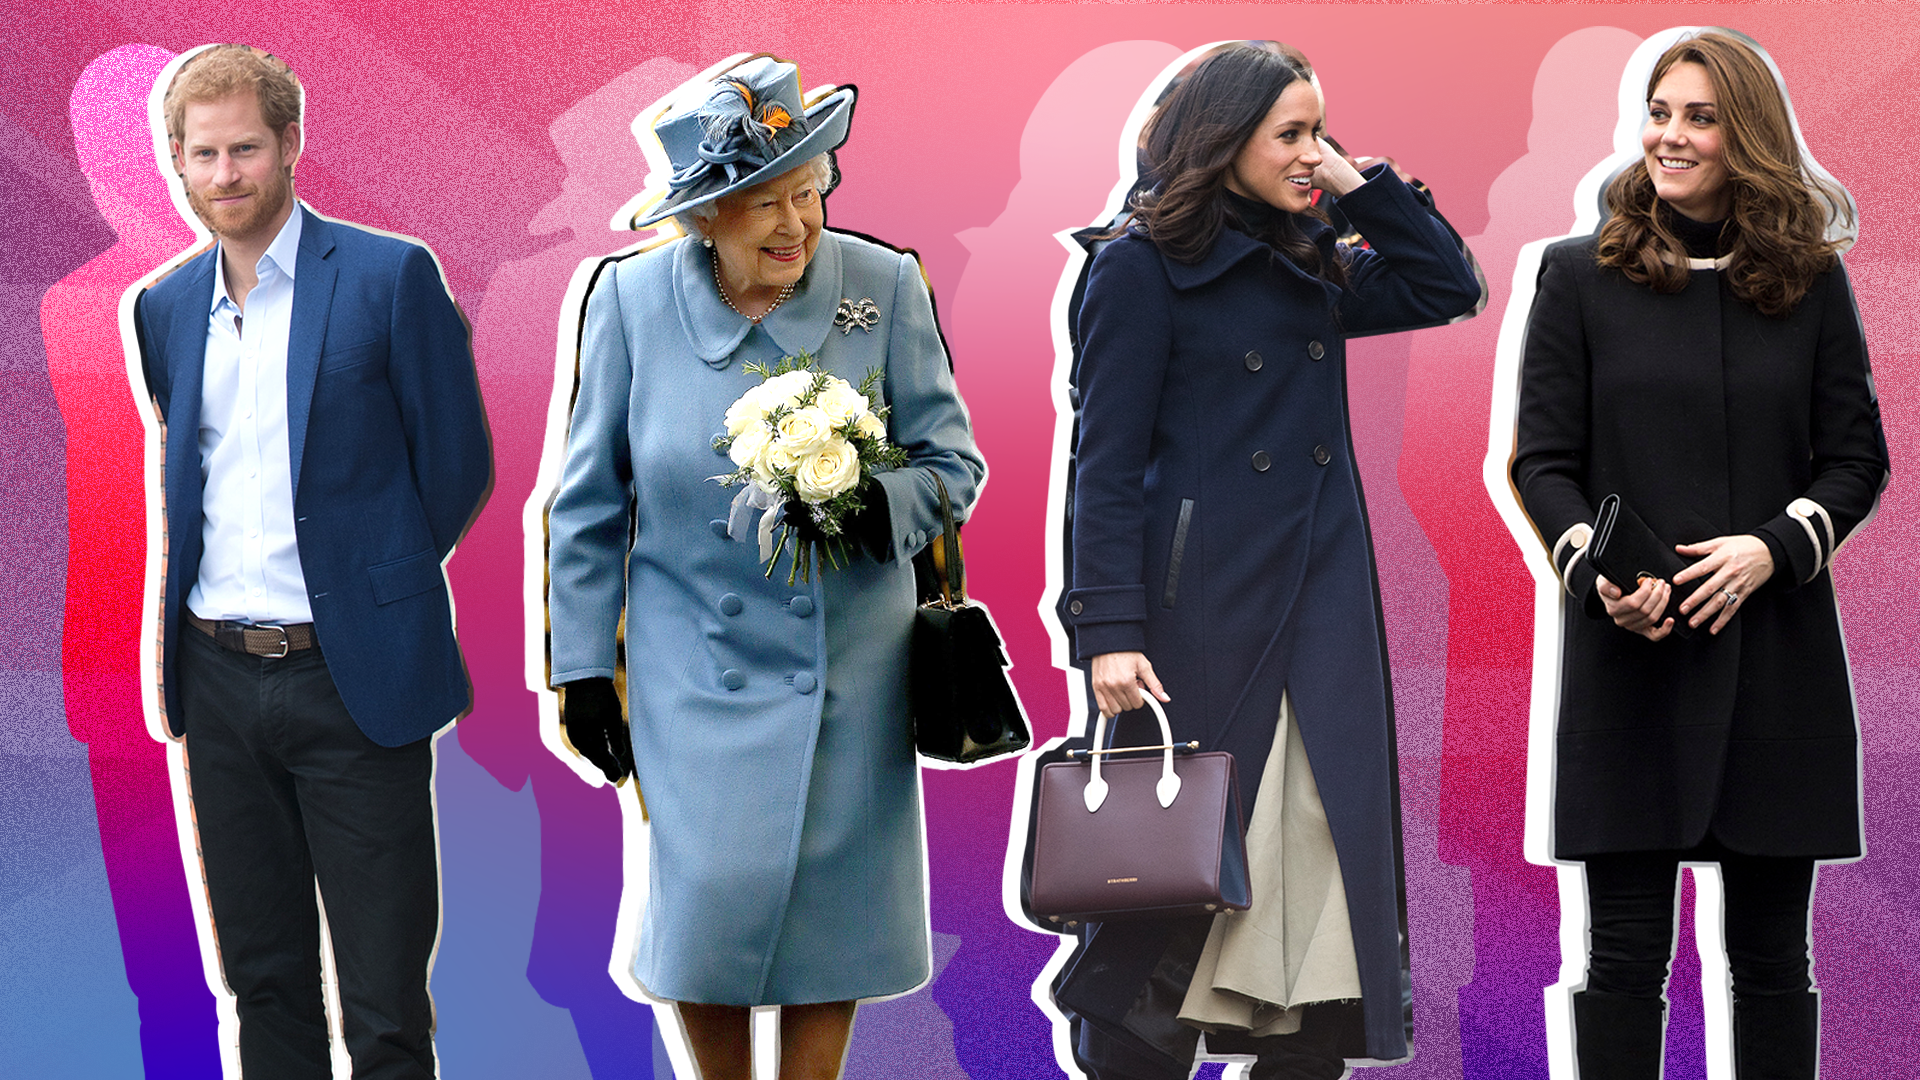 The Royal Family Dress Code Rules You Didn't Know About